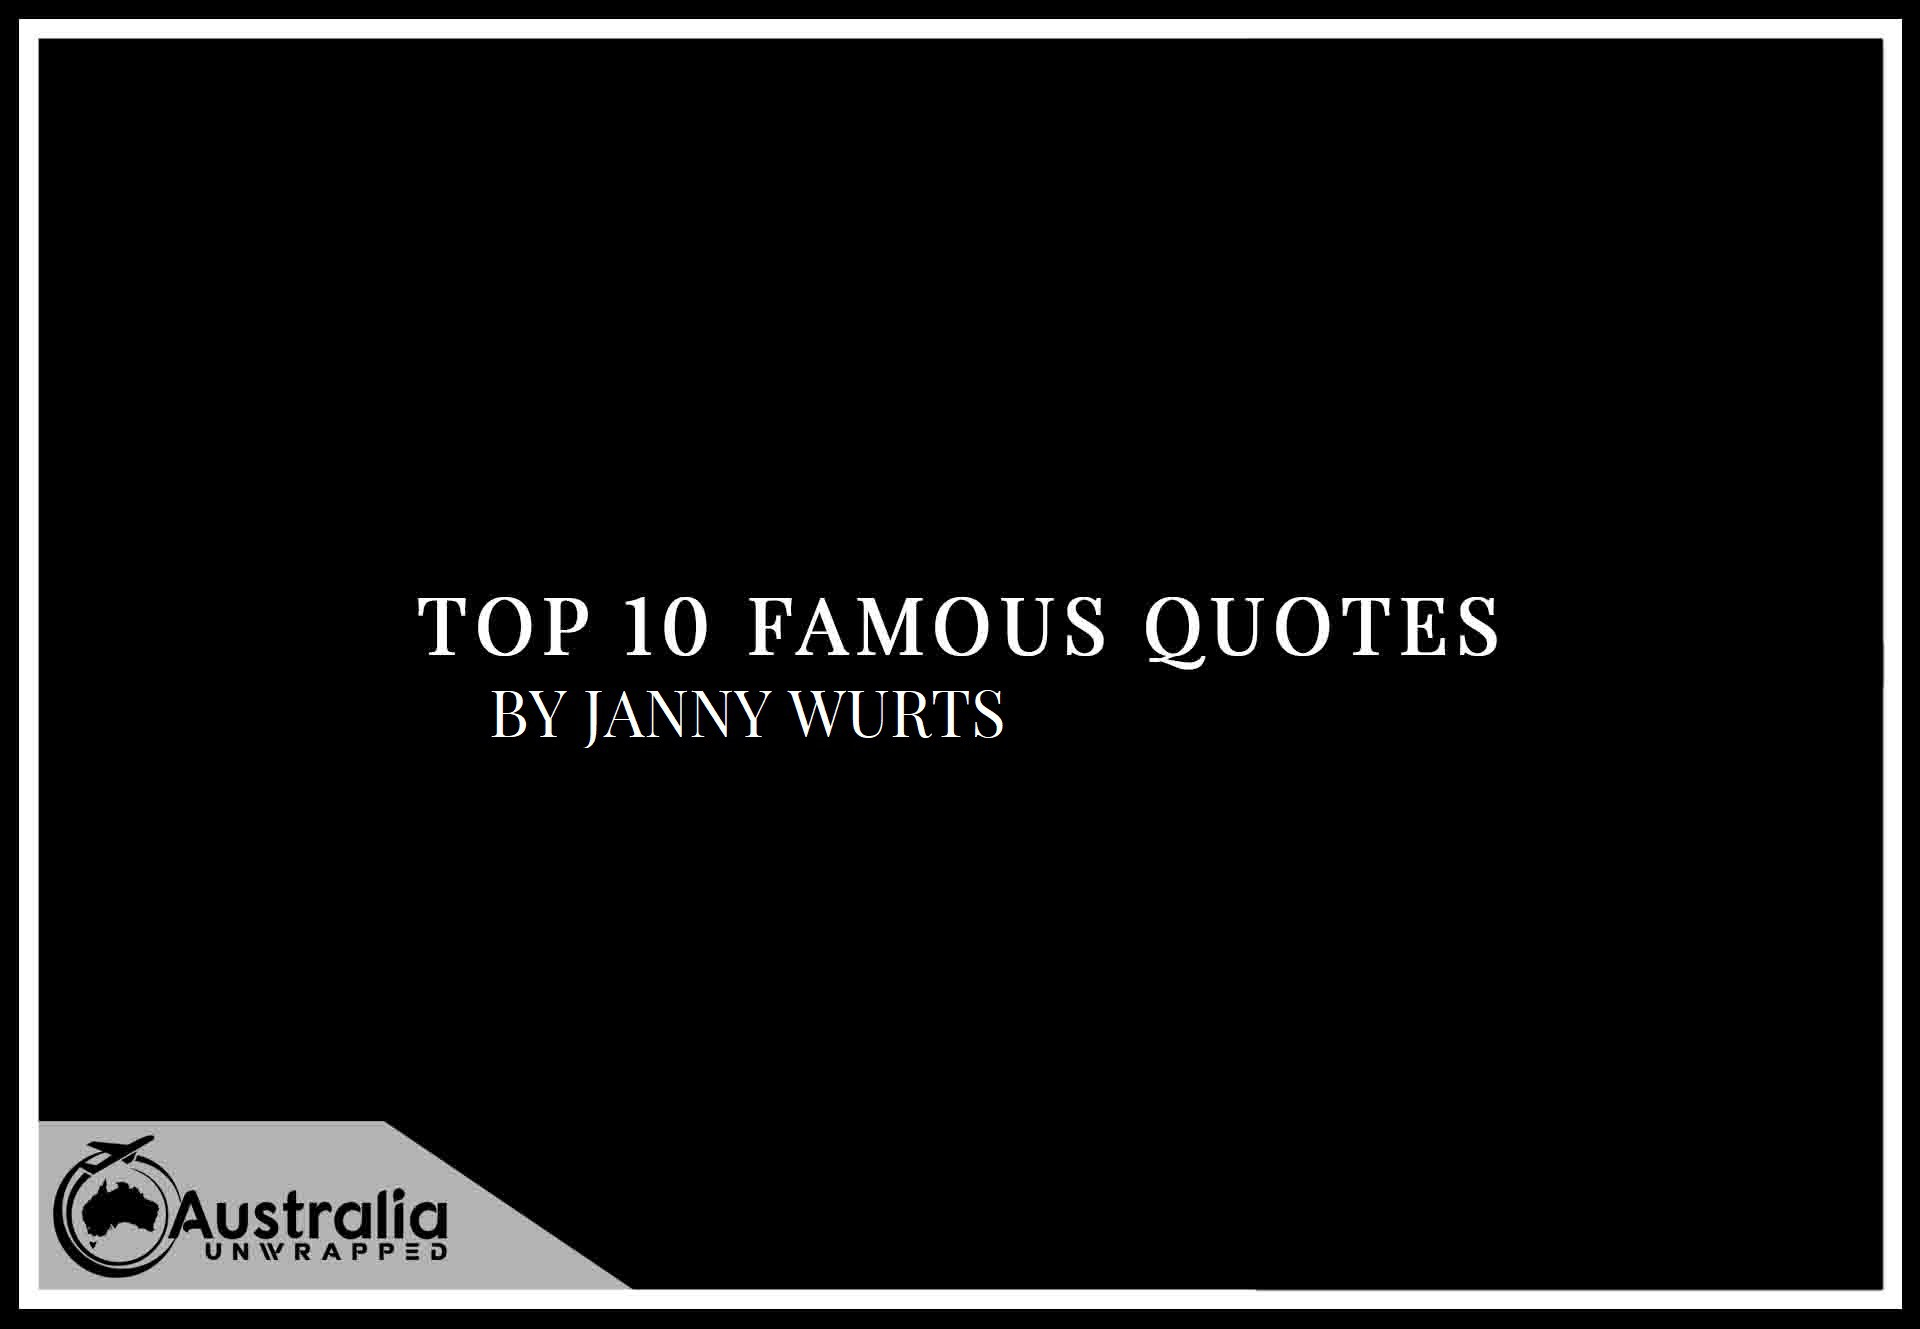 Top 10 Famous Quotes by Author Janny Wurts